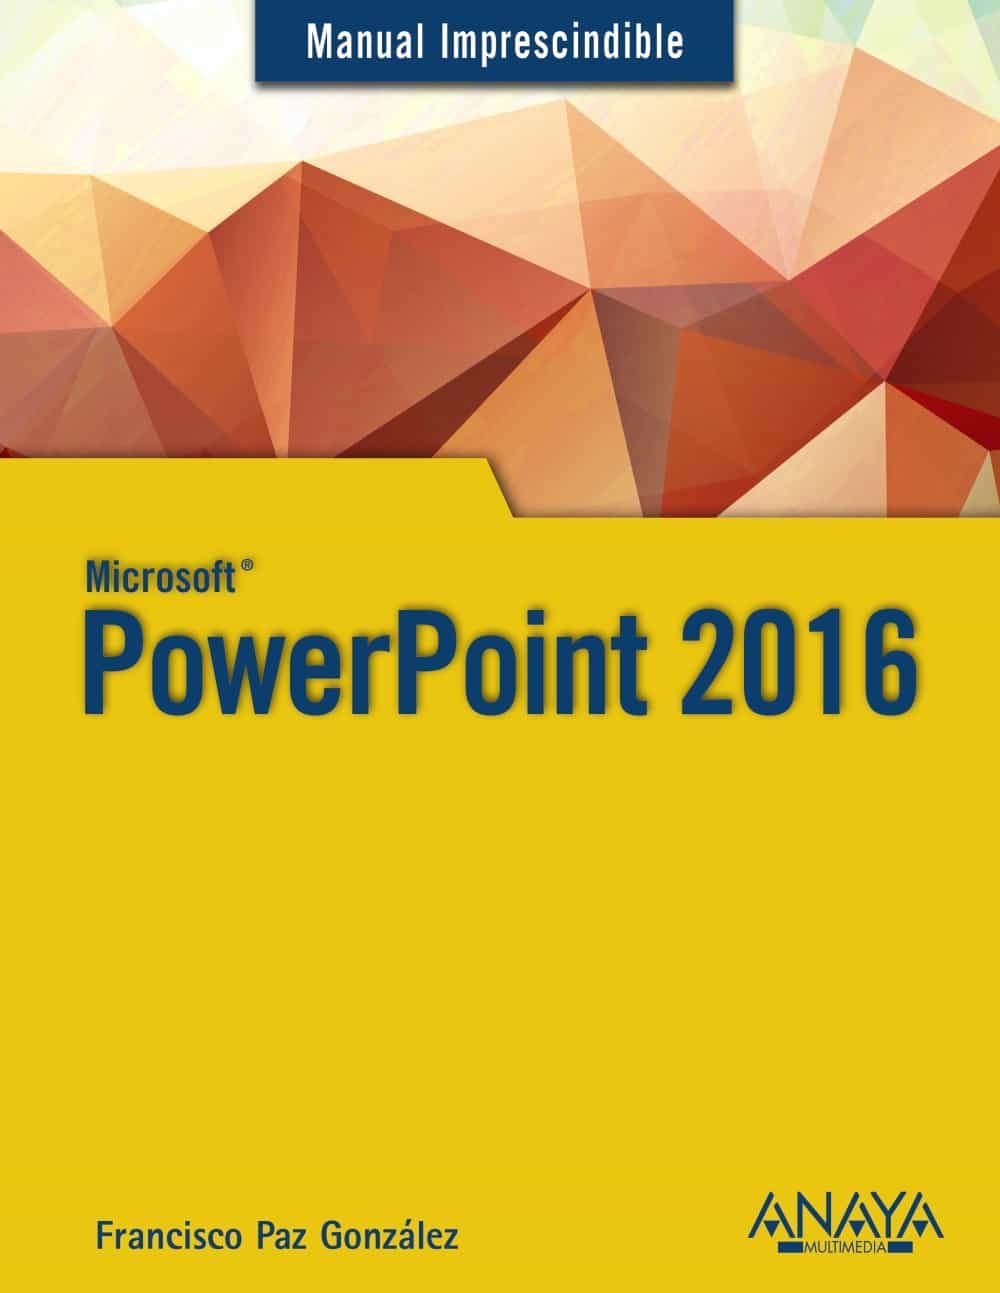 Powerpoint 2016 (manual Imprescindible) por Francisco Paz